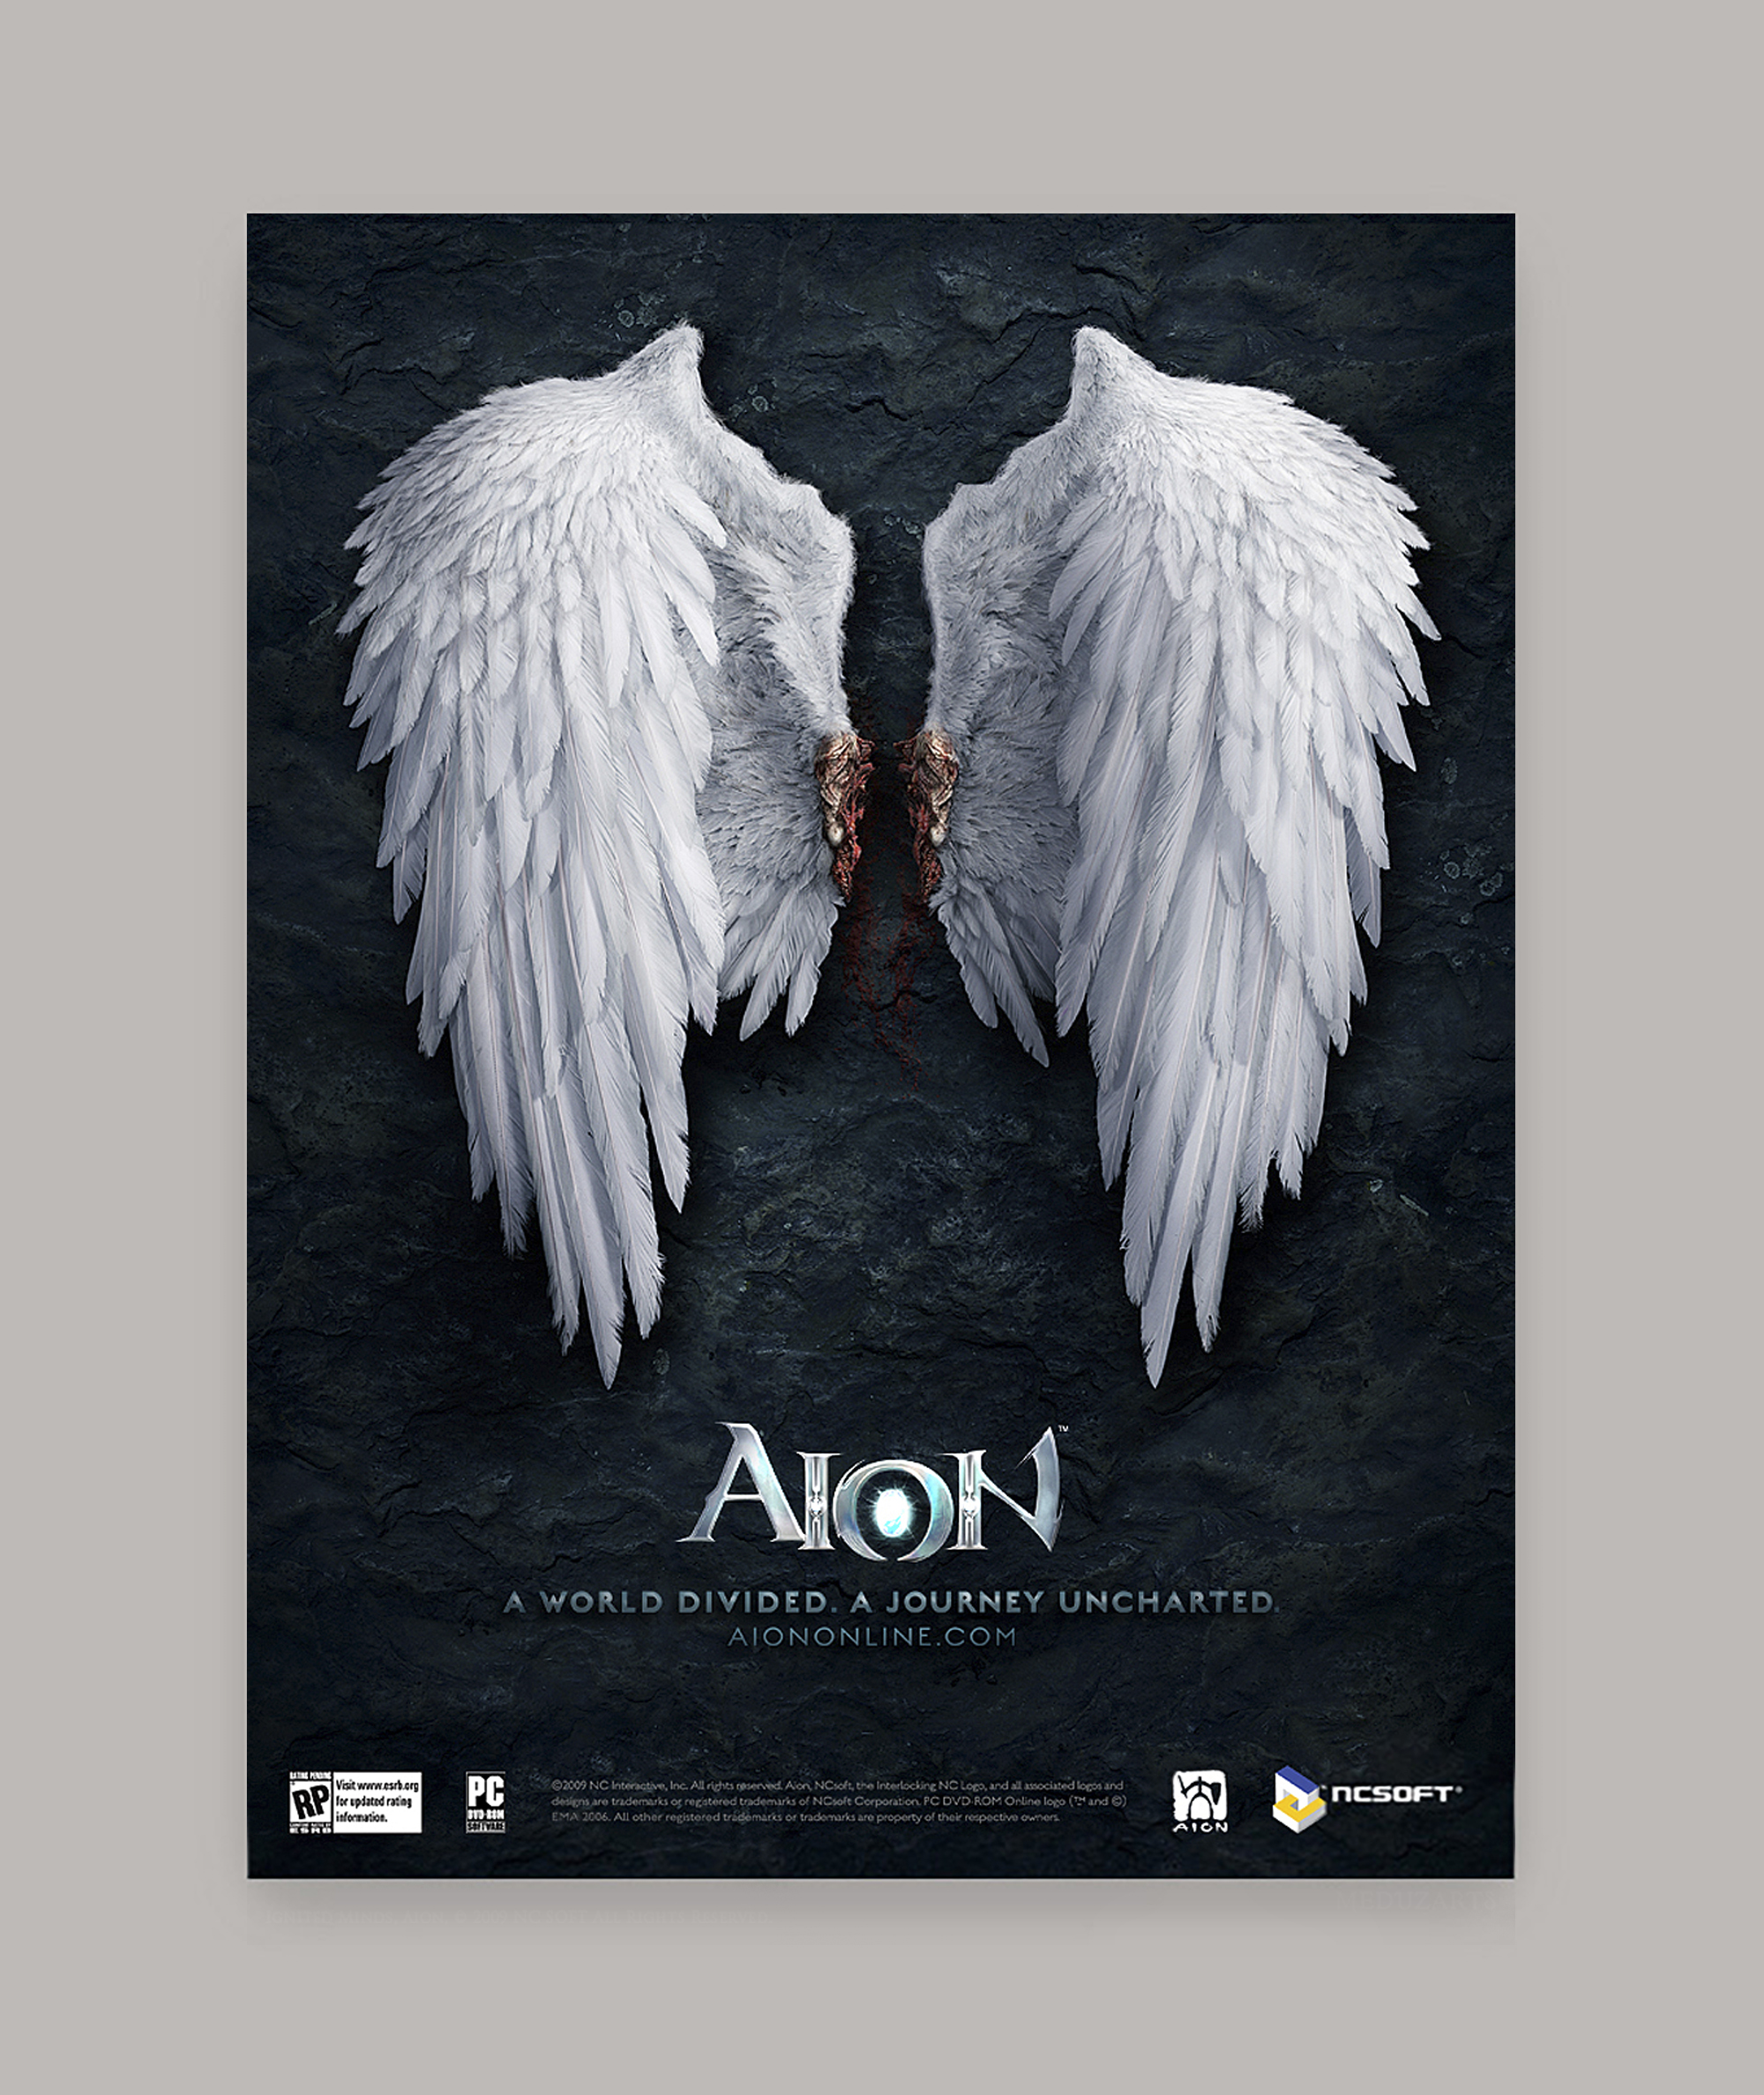 Aion_WhiteWings_2000px.jpg